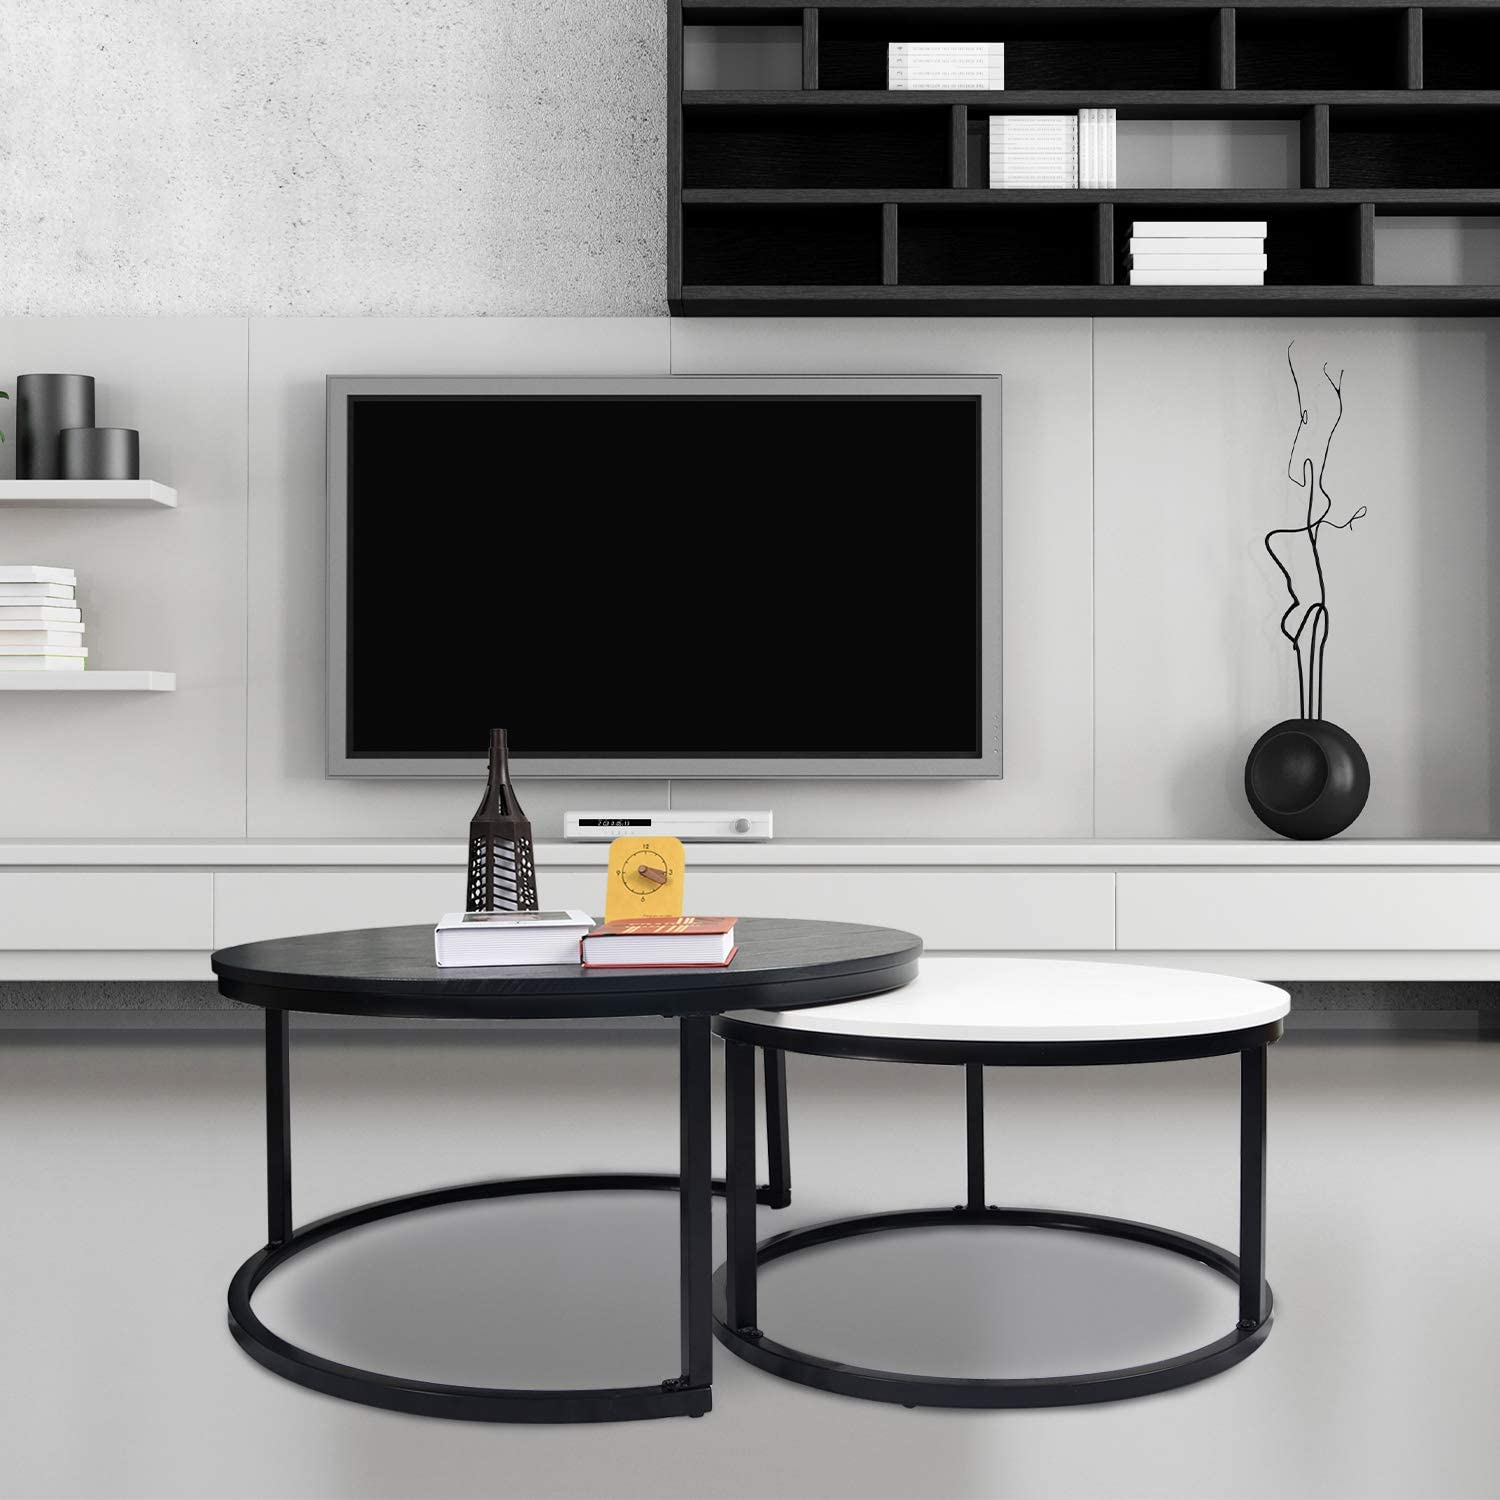 charaHOME Round Coffee Tables,2 Round Nesting Table Set Circle Coffee Table with Storage Open Shelf for Living Room Modern Minimalist Style Furniture Side End Table of Stable(Black & White): Kitchen & Dining